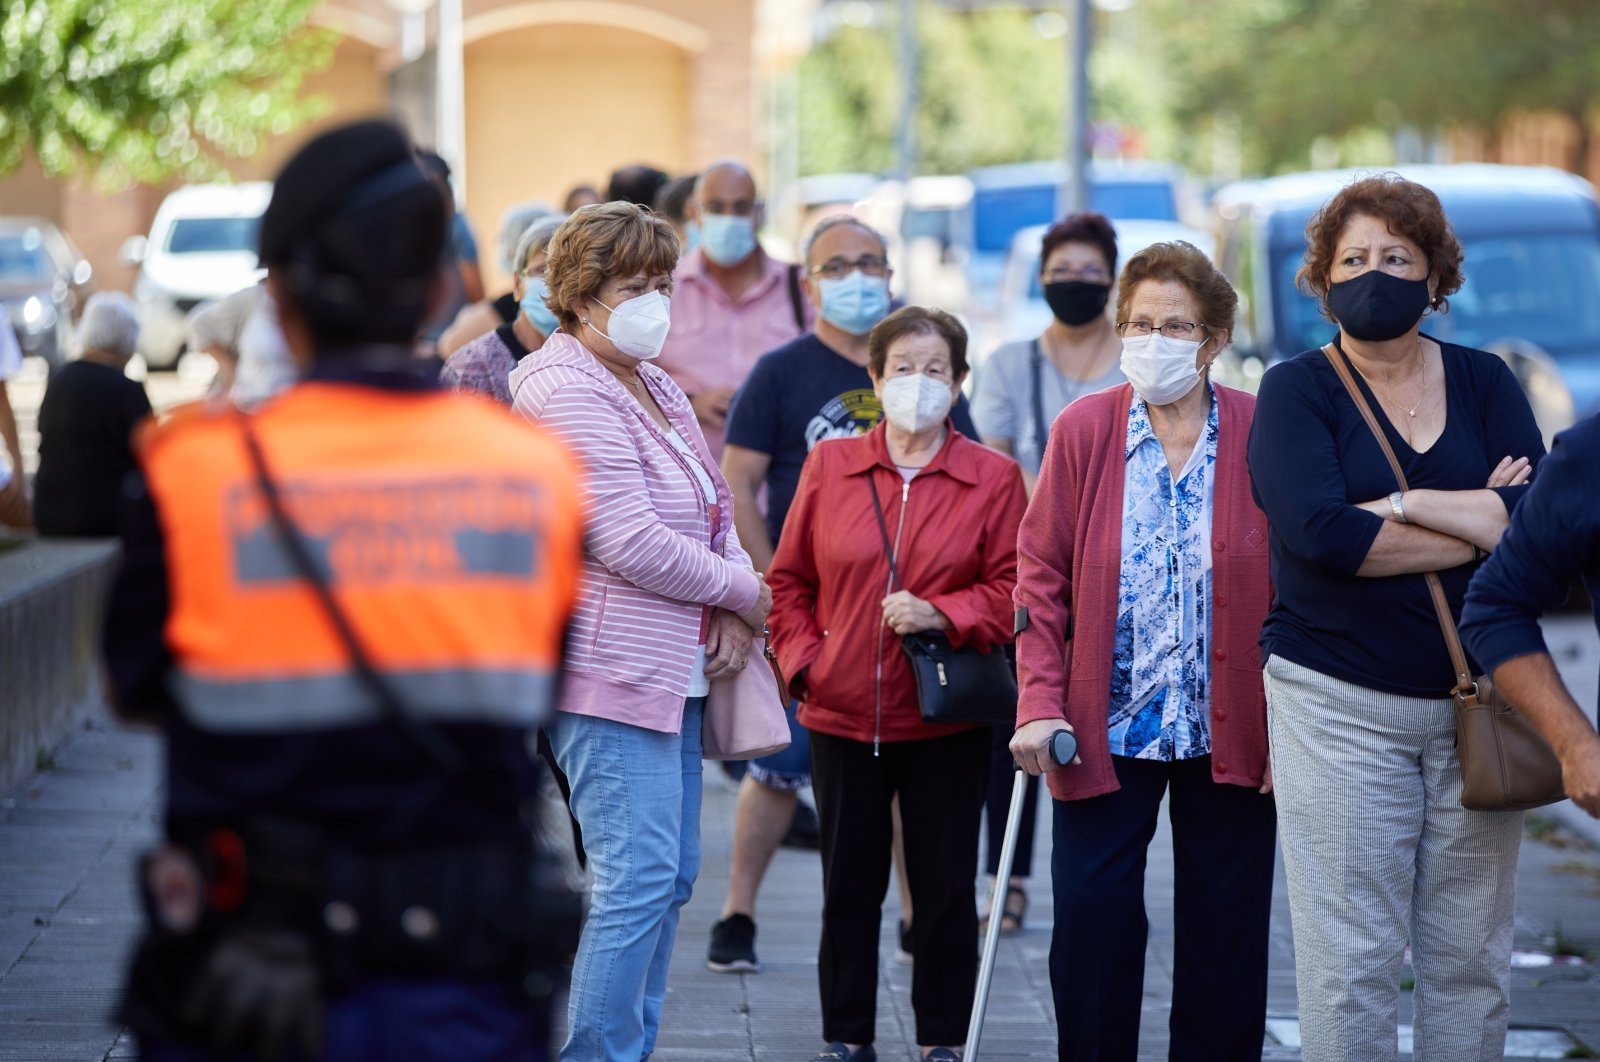 People wait to be tested for COVID-19 in Girona, Spain, Sept. 7, 2020. (EPA Photo)